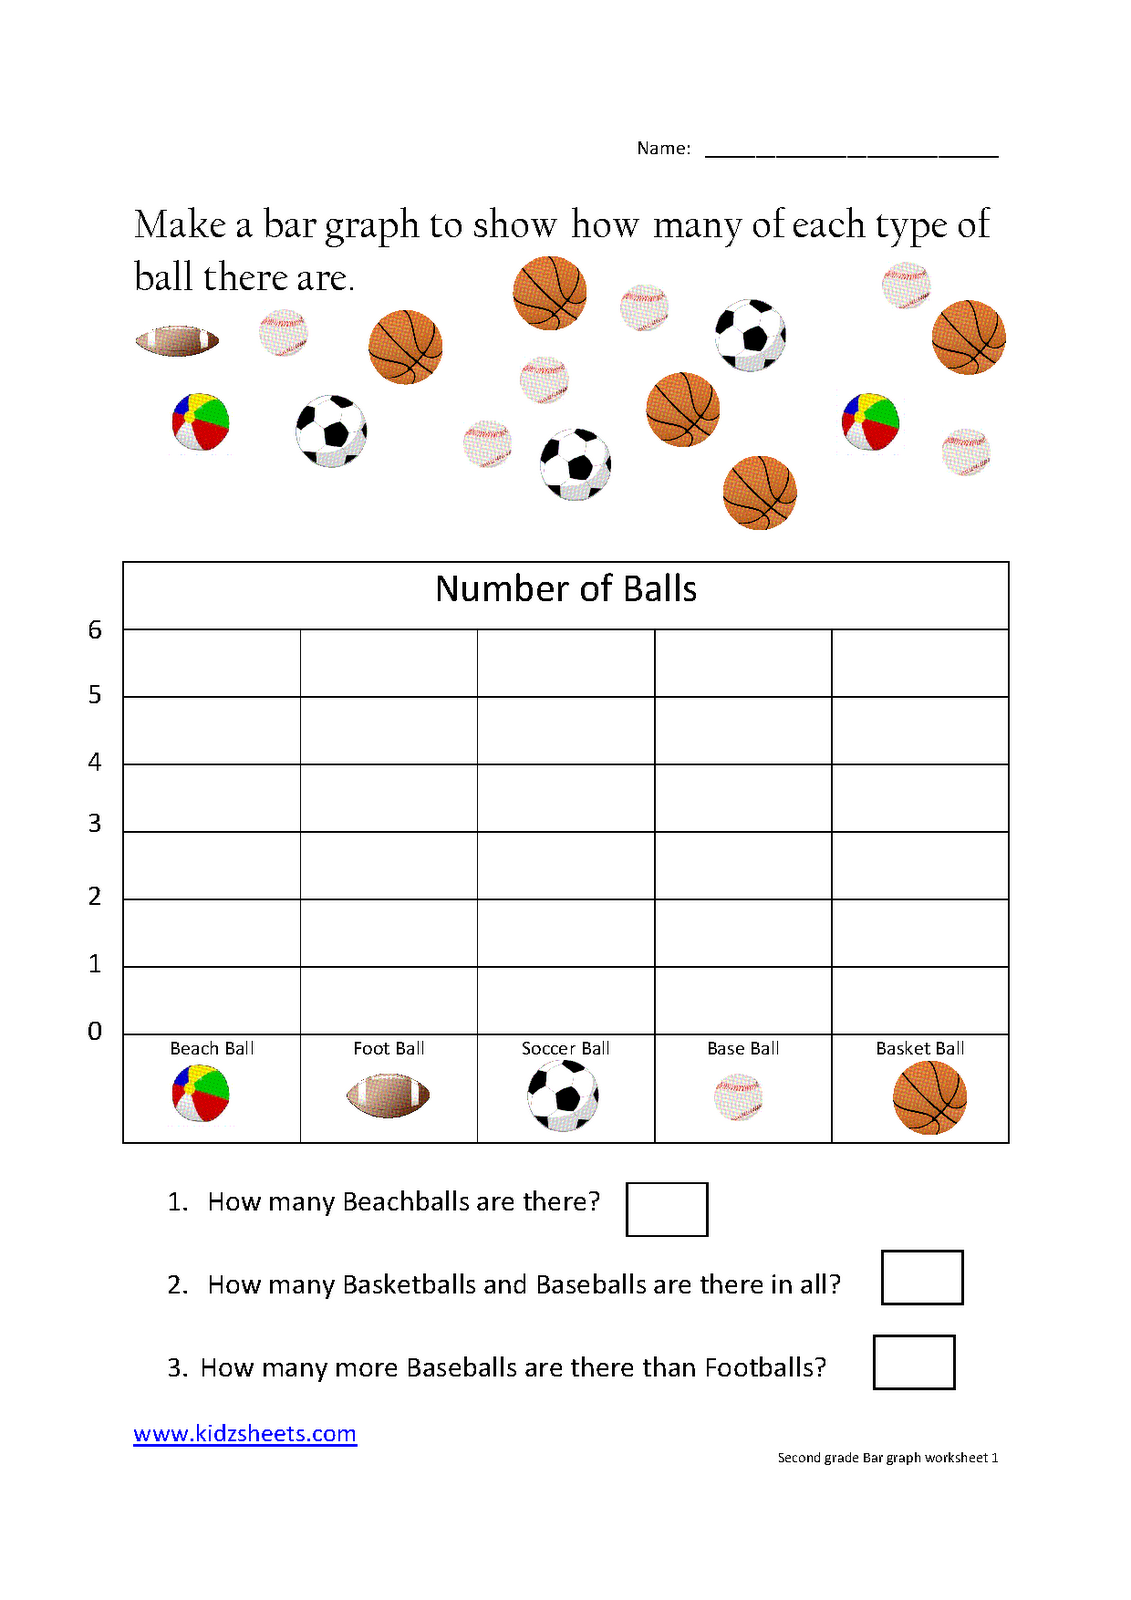 Kidz Worksheets Second Grade Bar Graph Worksheet1 – Second Grade Printable Worksheets